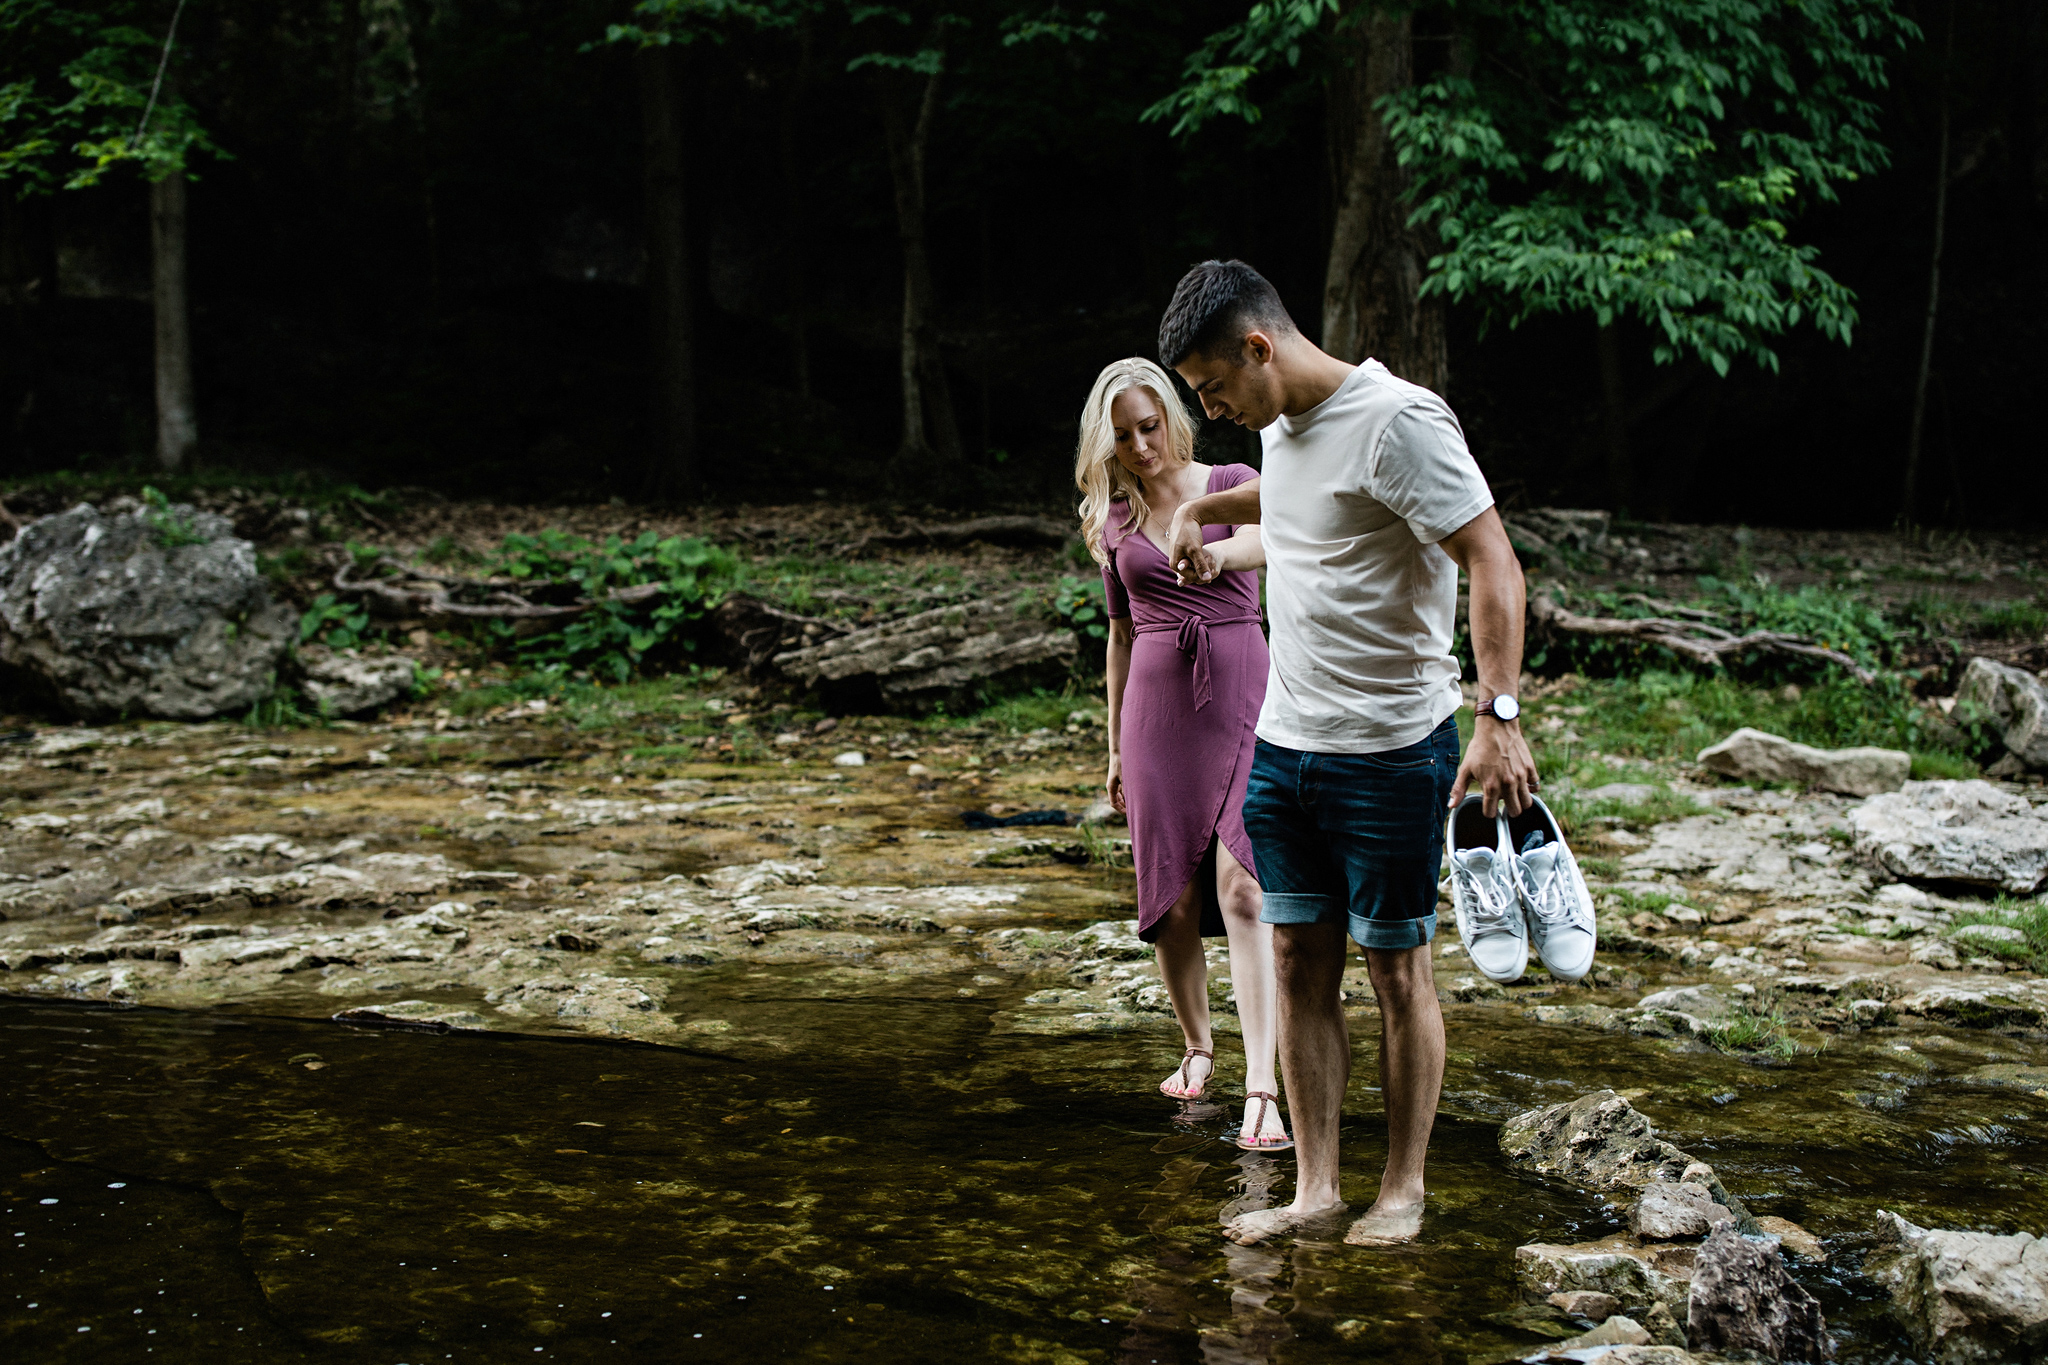 230-summer-elora-gorge-sunset-engagement-session-with-couple-in-the-water.jpg